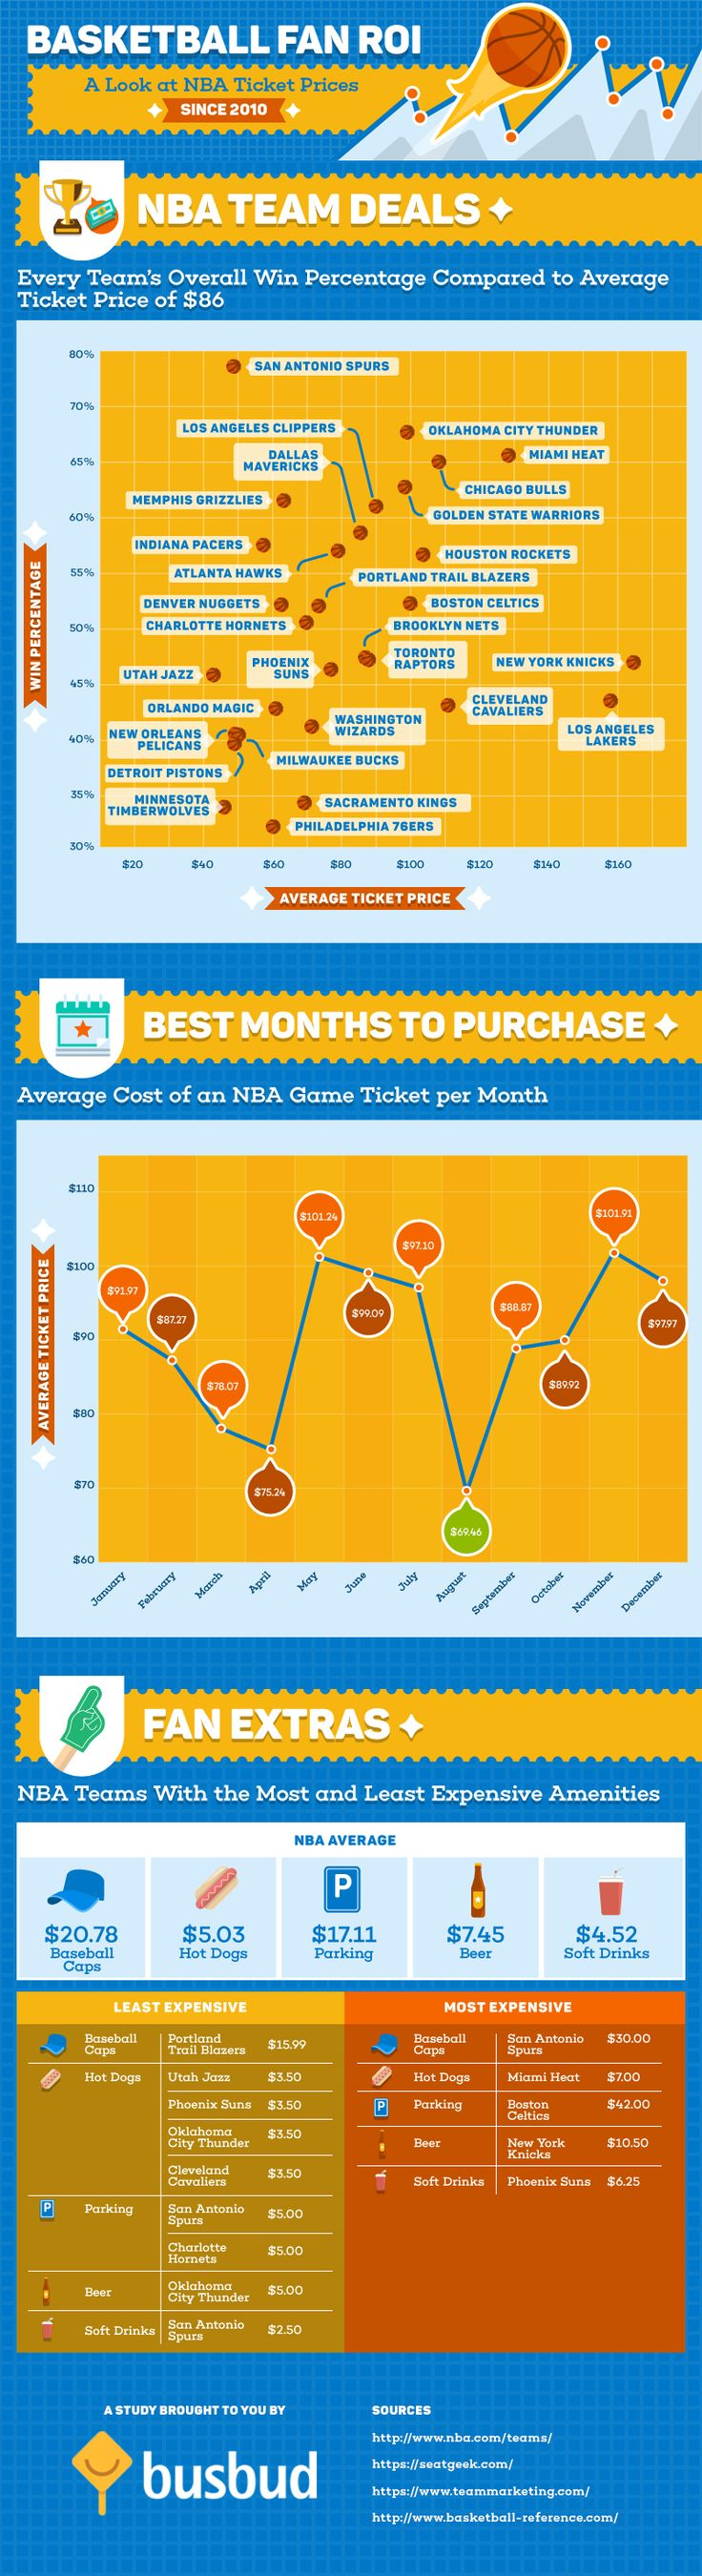 Basketball Fan ROI - A Look at NBA Ticket Prices since 2010